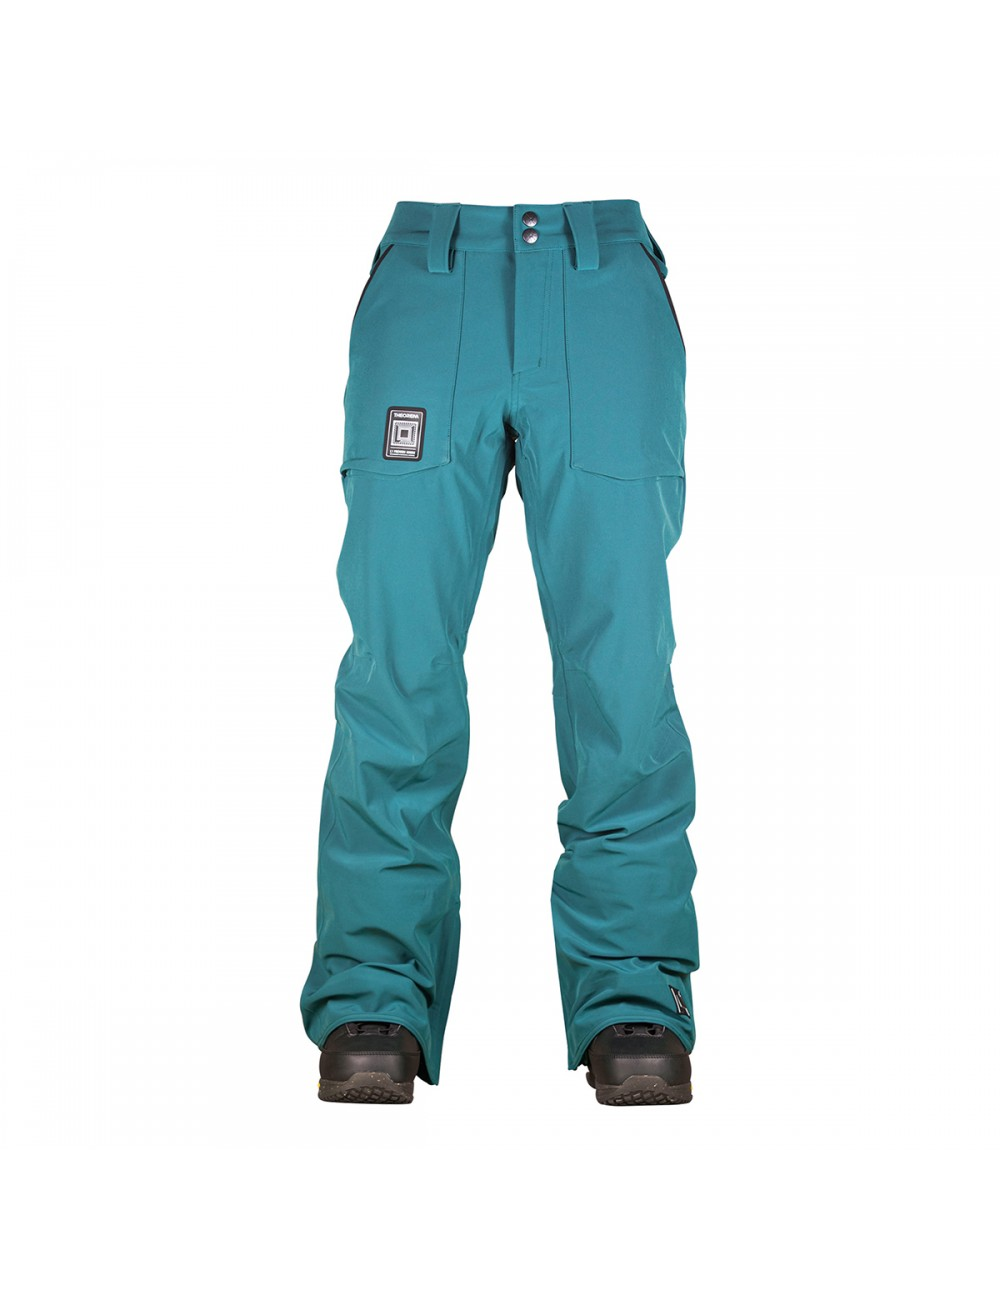 L1 Wms Cosmic Age Pant - Abyss_13959